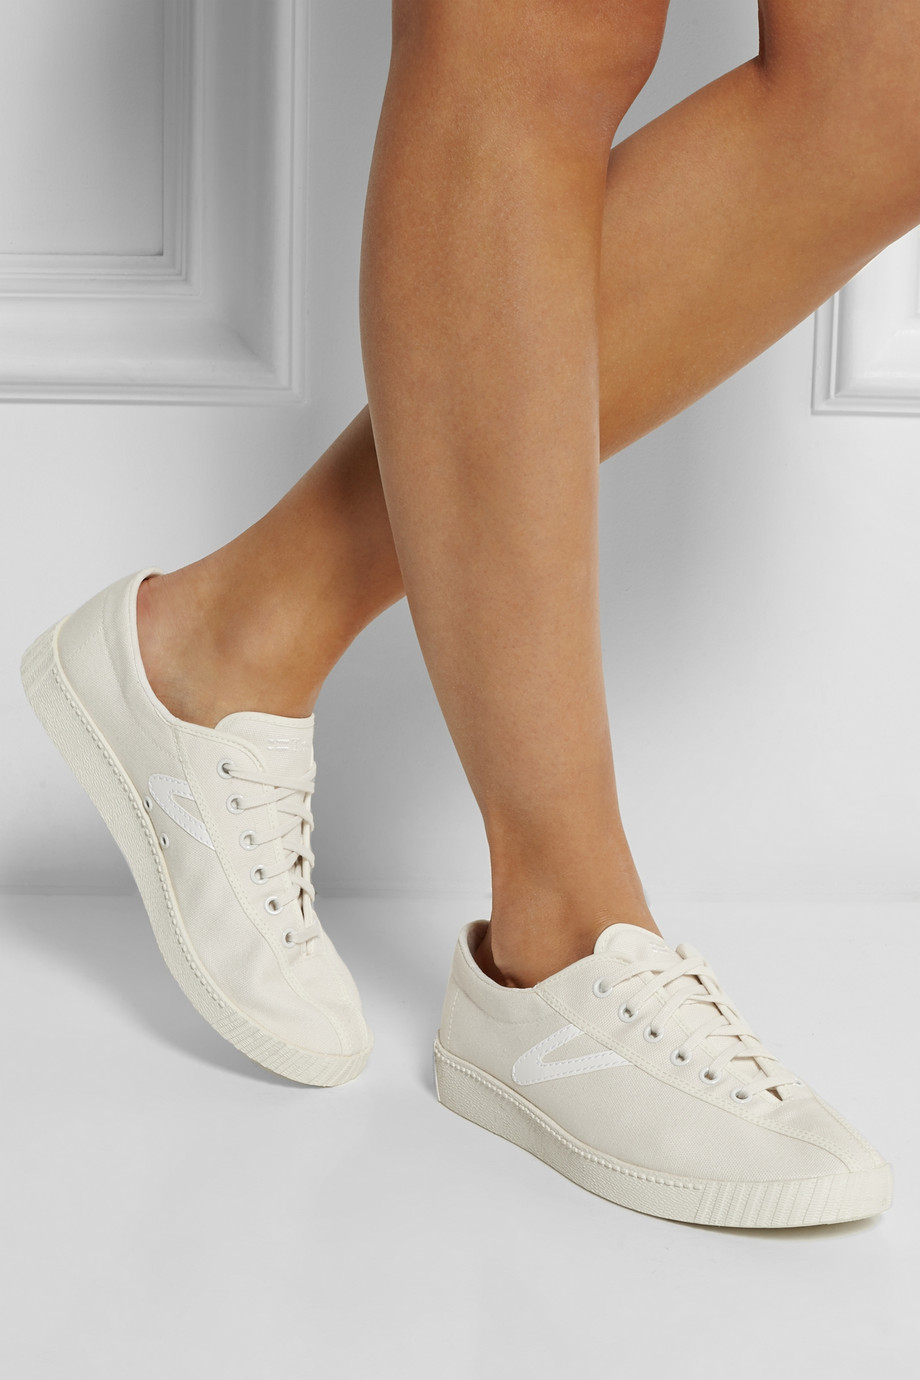 18ad365c1 Tretorn Nylite Canvas Tennis Sneakers in White - Lyst